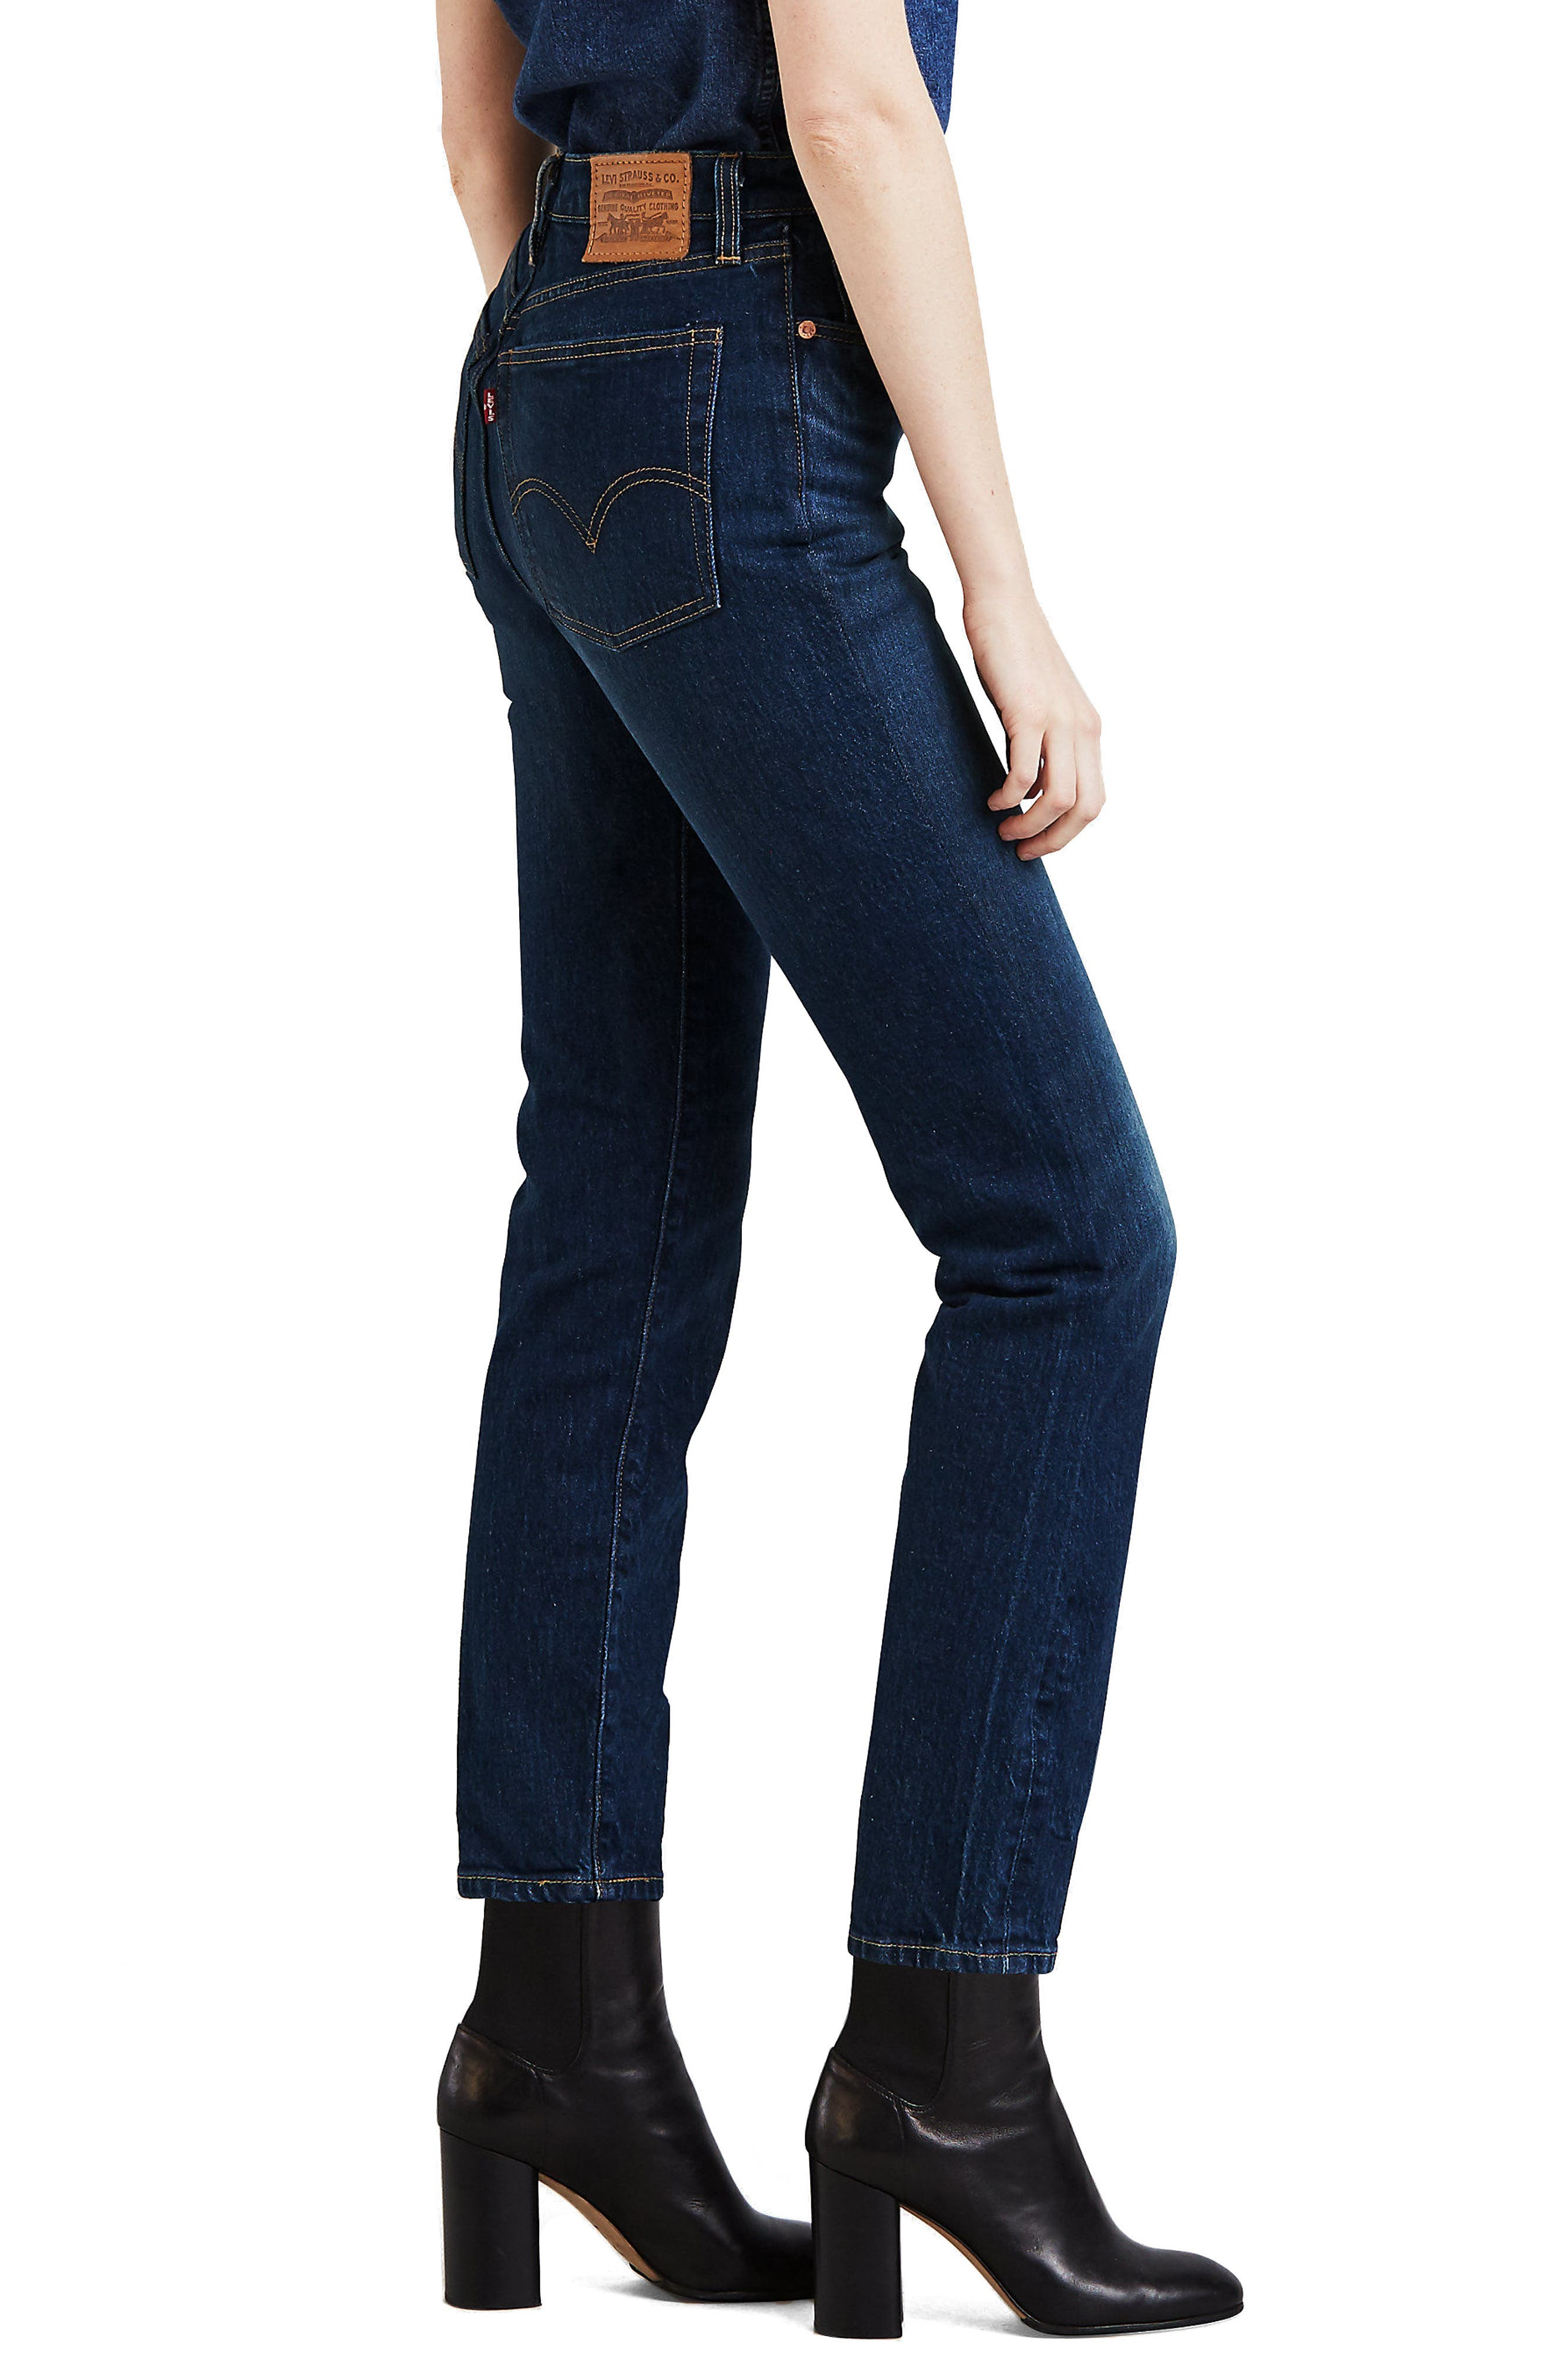 LEVI'S<SUP>®</SUP>, Wedgie Icon Fit High Waist Crop Jeans, Alternate thumbnail 4, color, AUTHENTIC FAVORITE